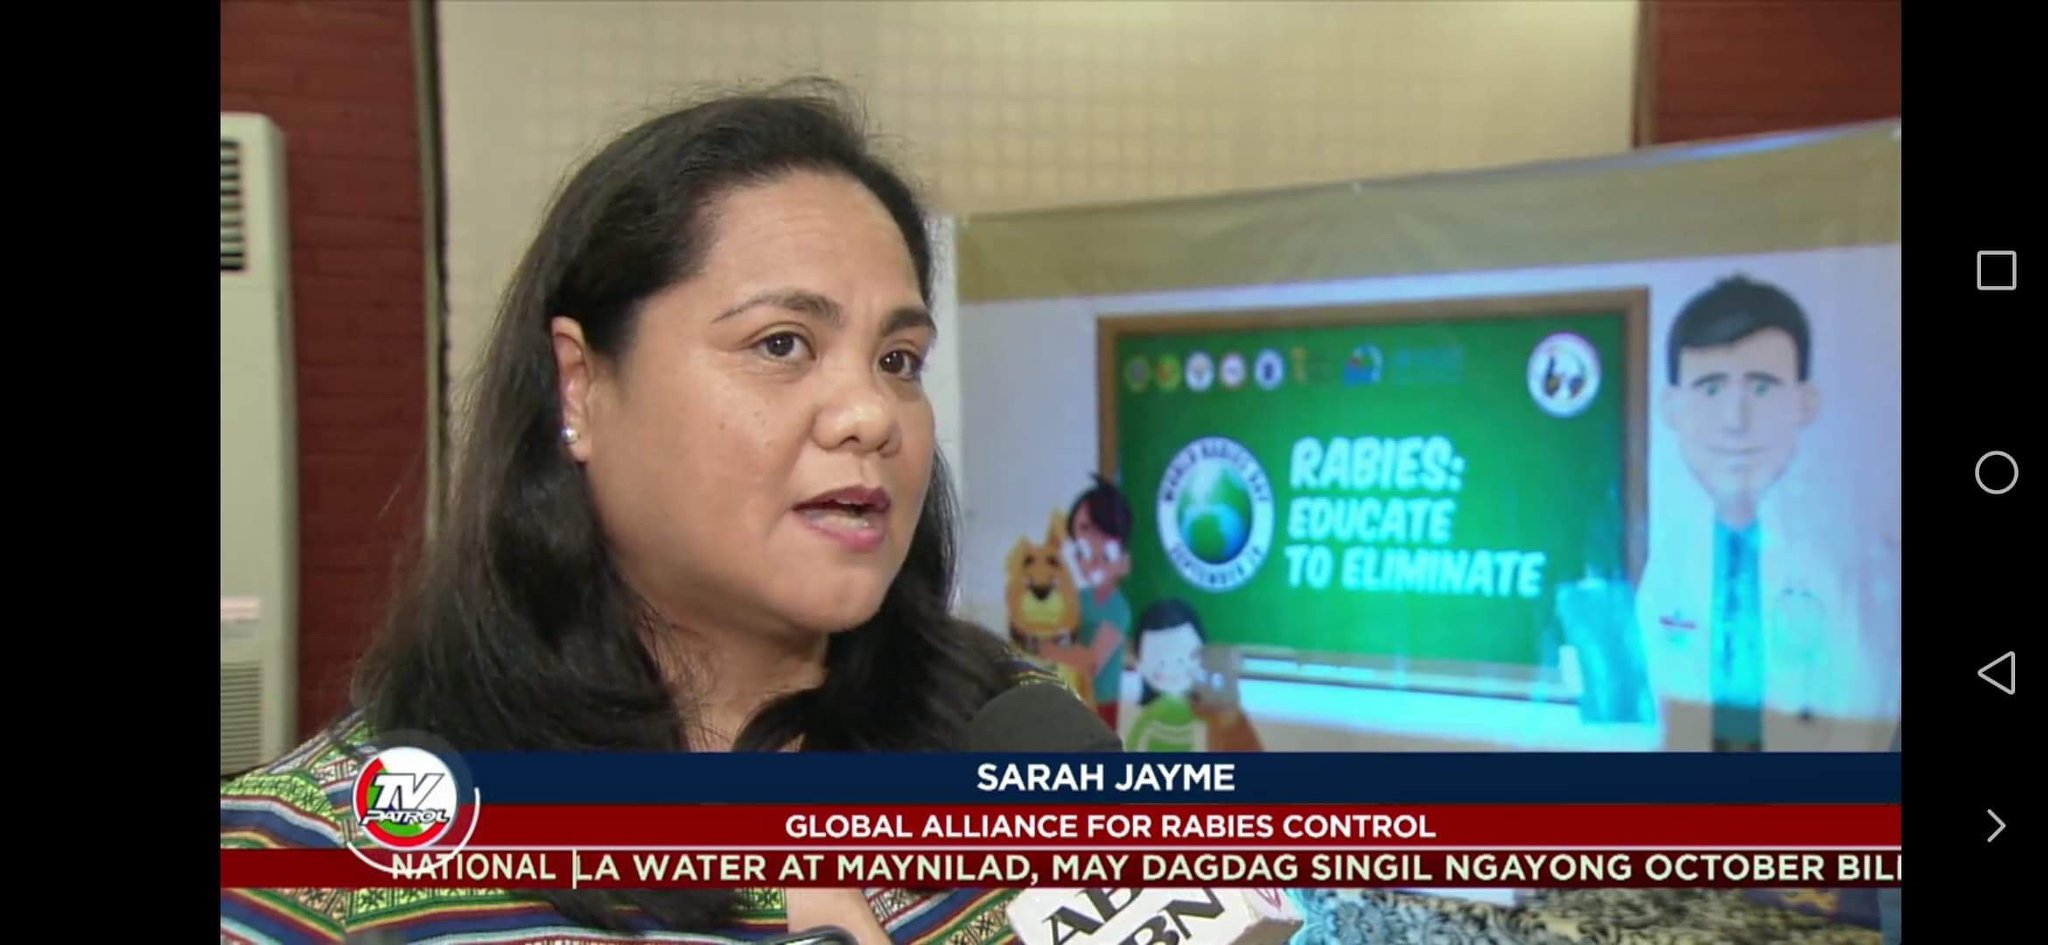 Dr Sarah Jayme of GARC participates in a TV interview about the education initiatives in the Philippines.